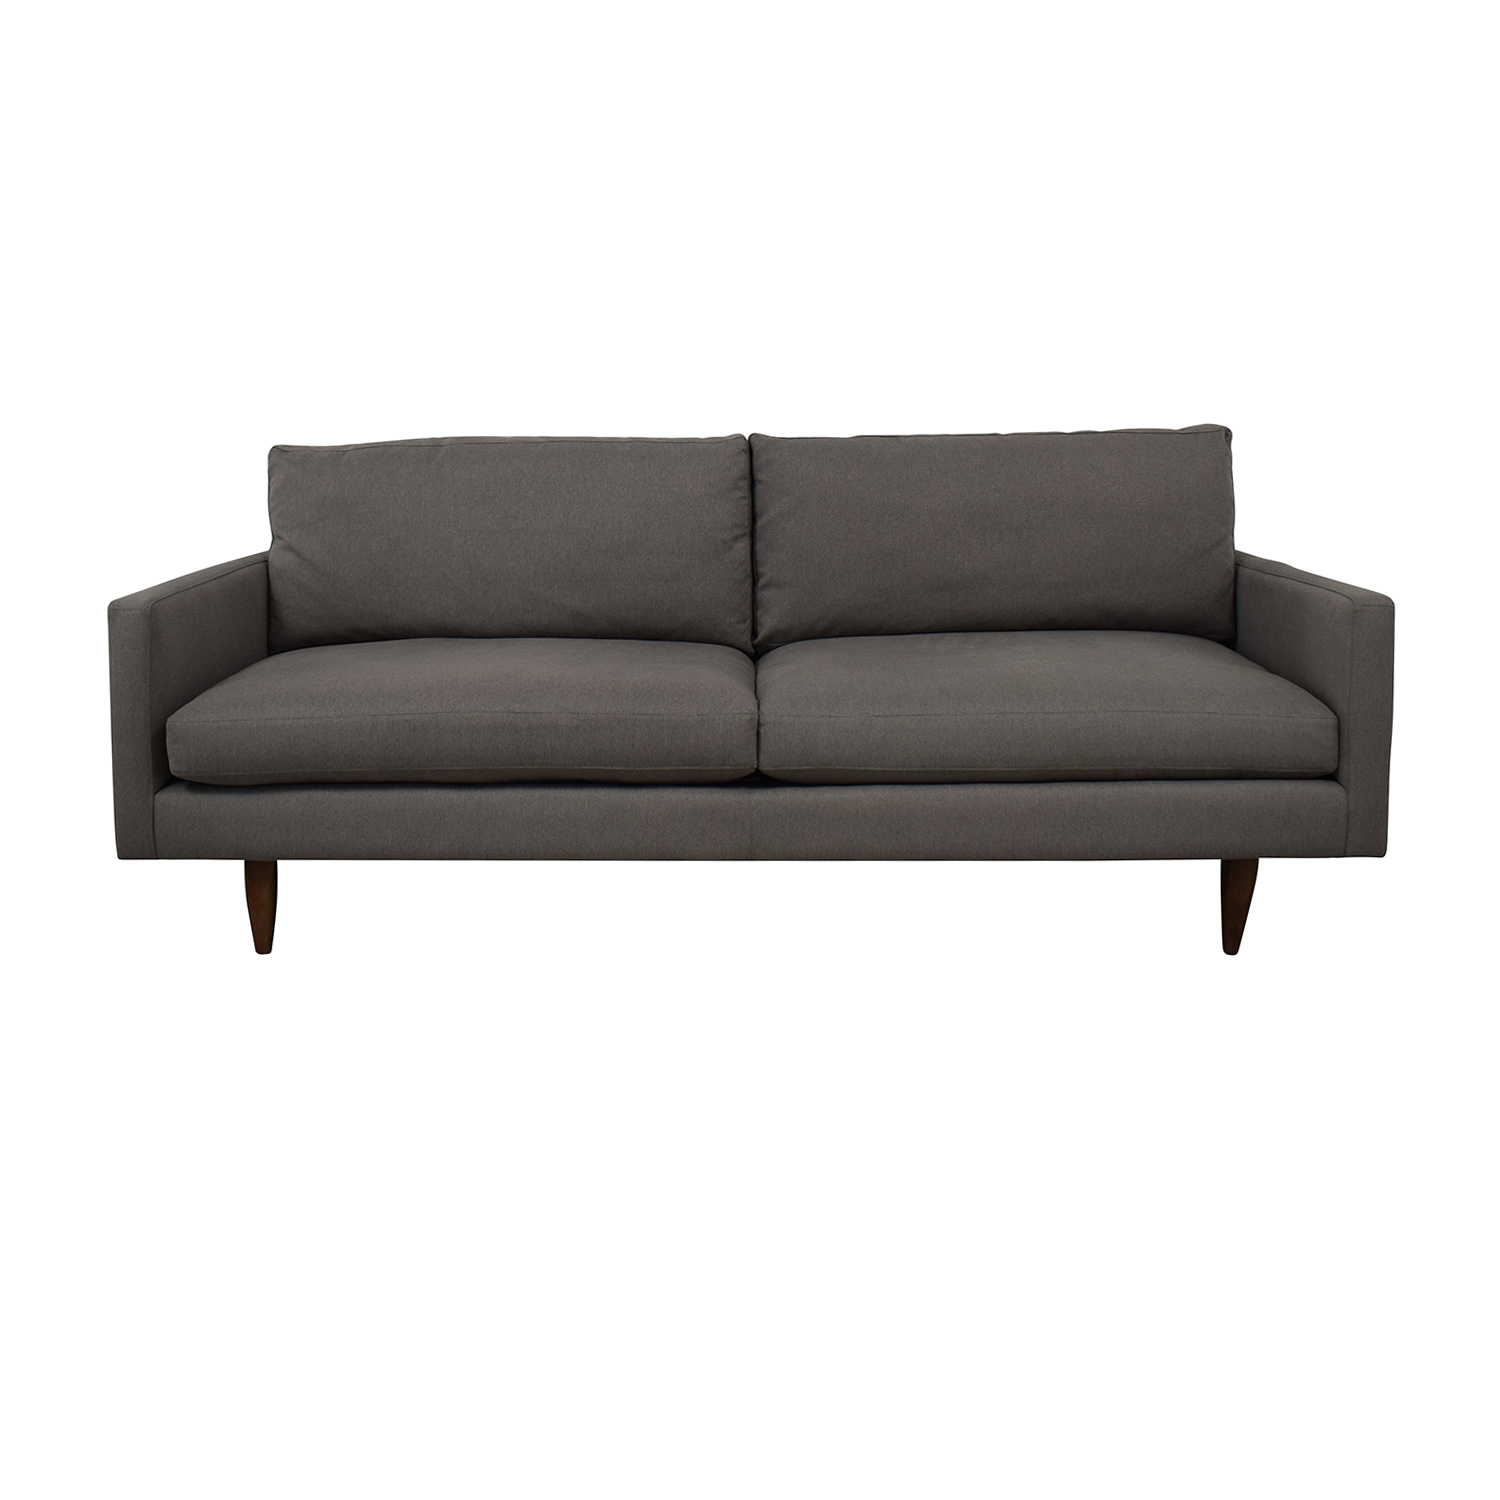 Room & Board Room & Board Jasper Sofa coupon